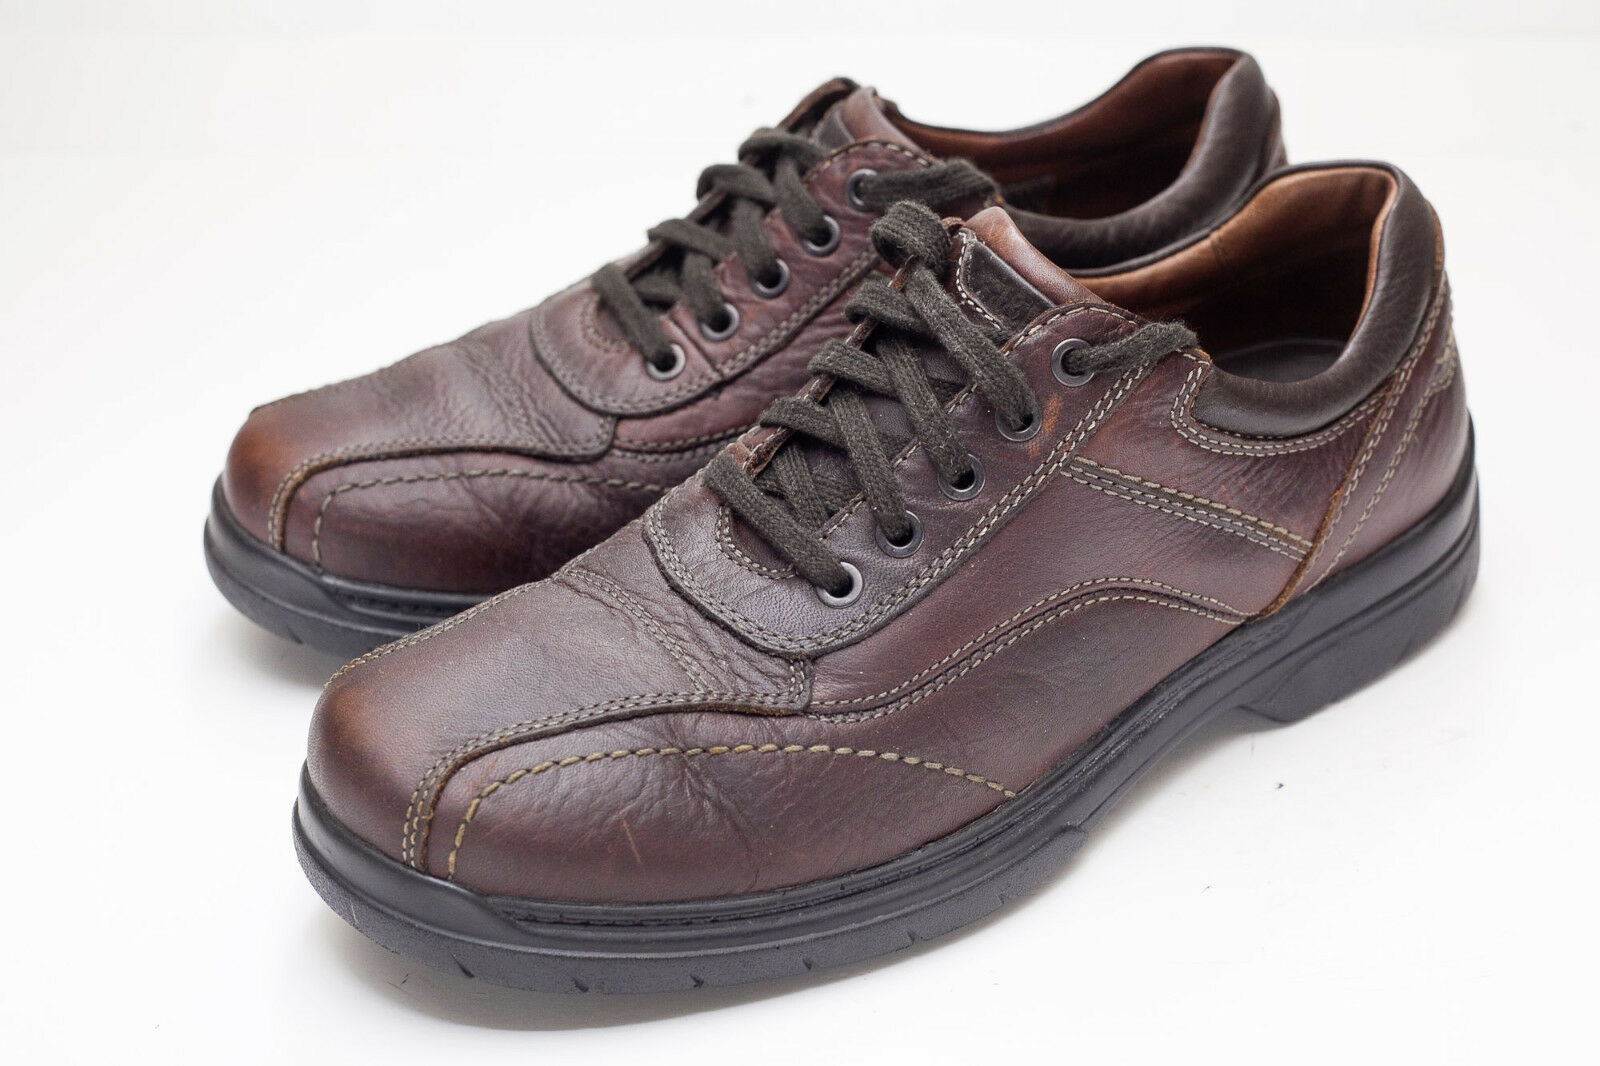 Johnston & Murphy 10 Brown Casual Oxford Men's shoes